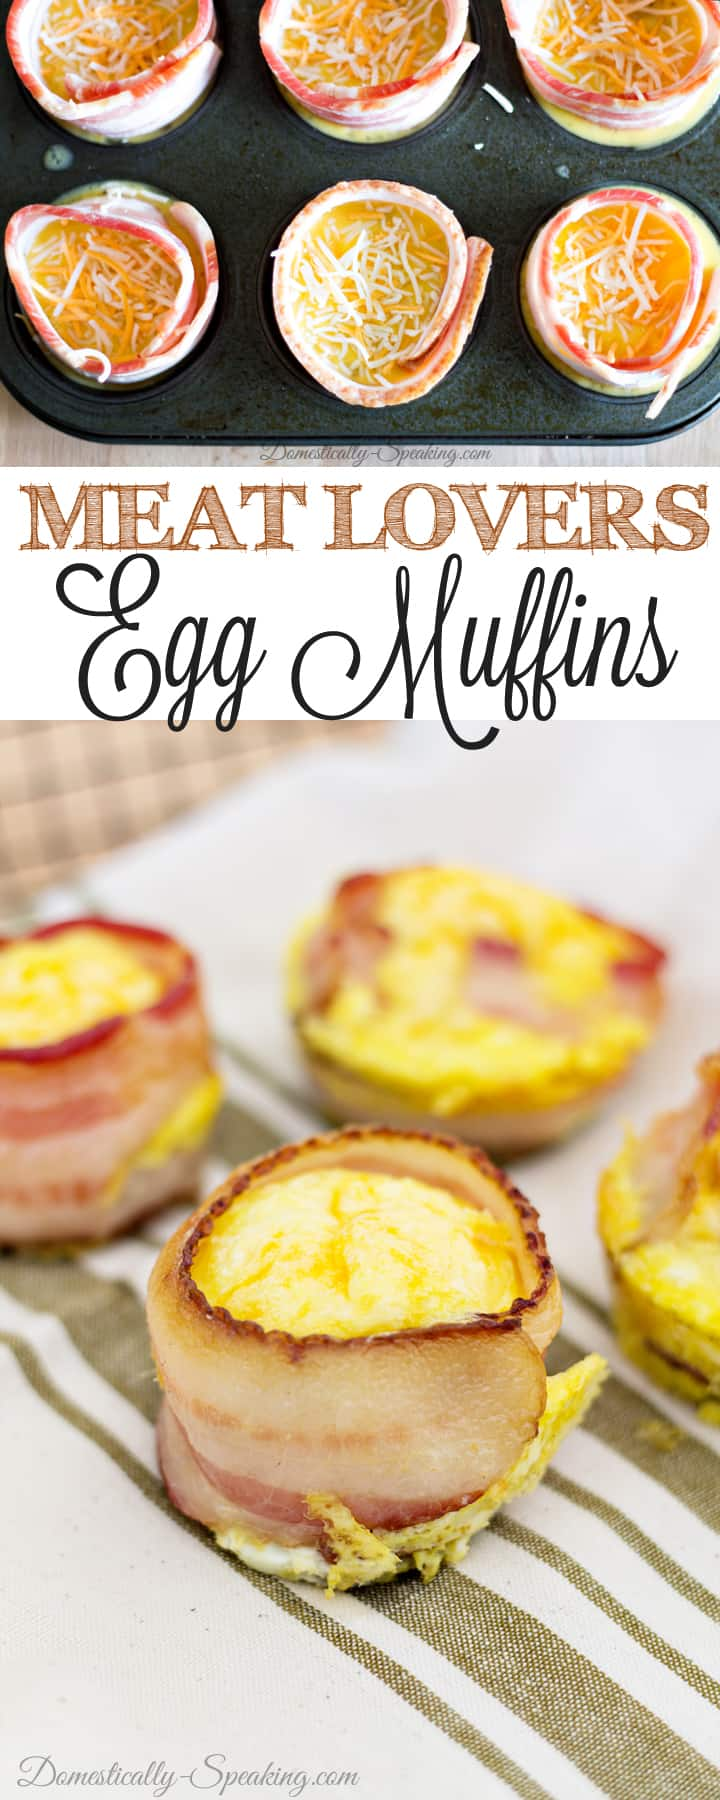 Ultimate Meat Lovers Egg Muffins - low carb, freezes great